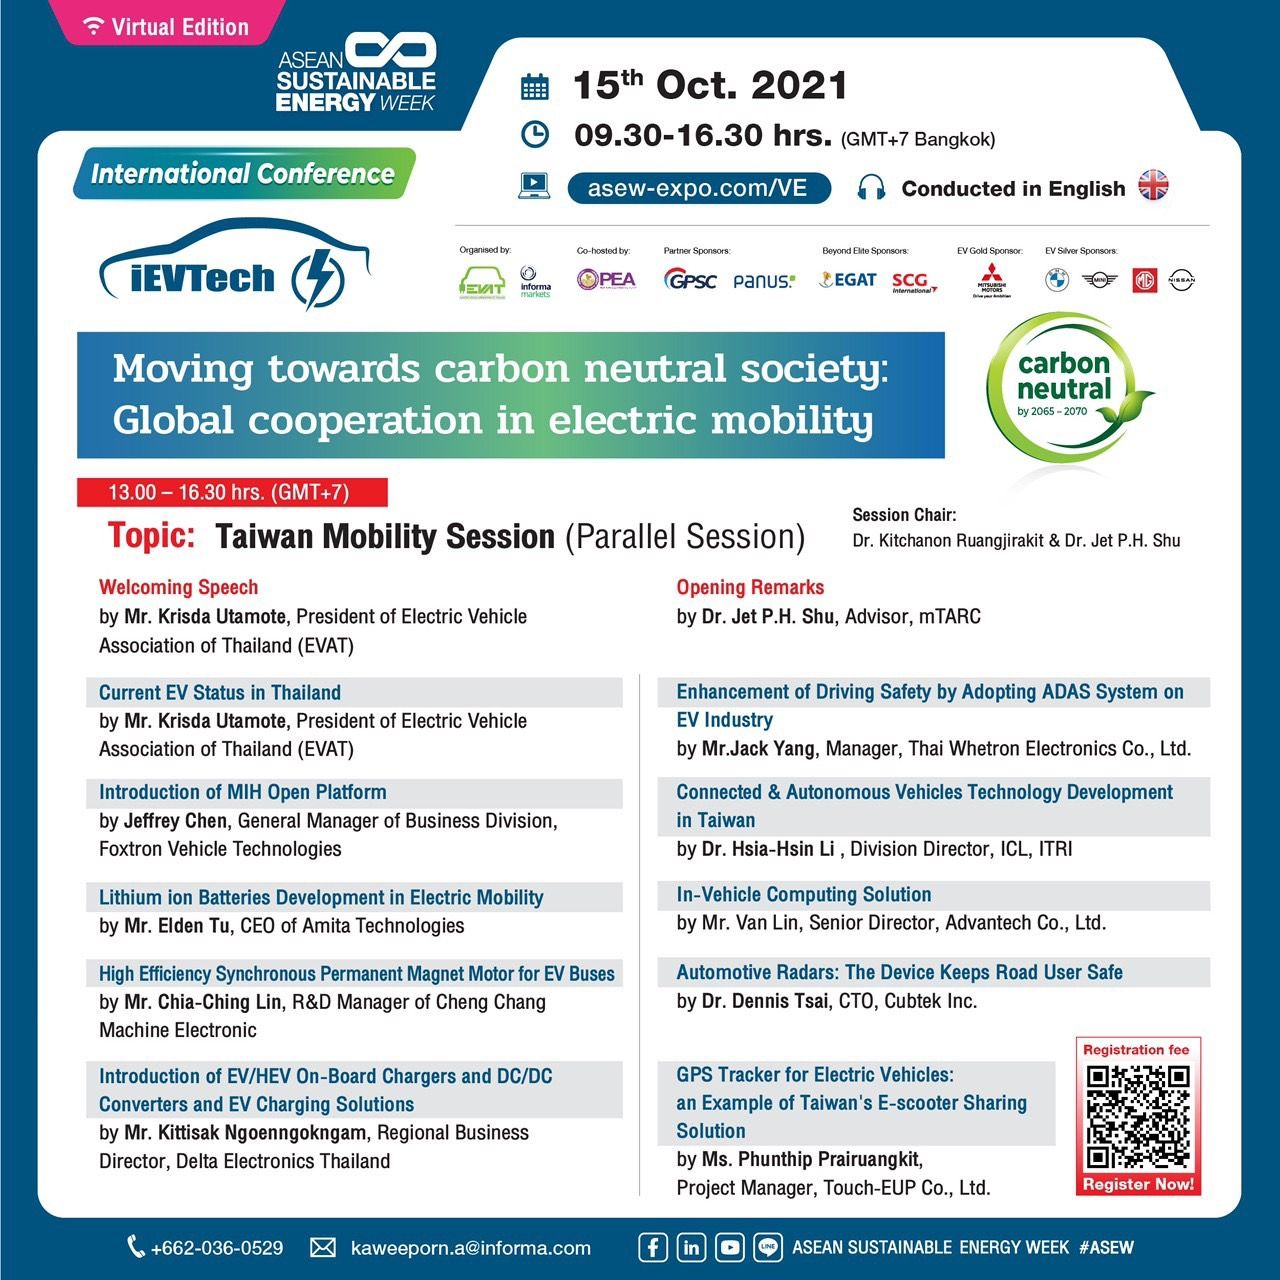 iEVTech - Taiwan Mobility Session (Parallel Session)